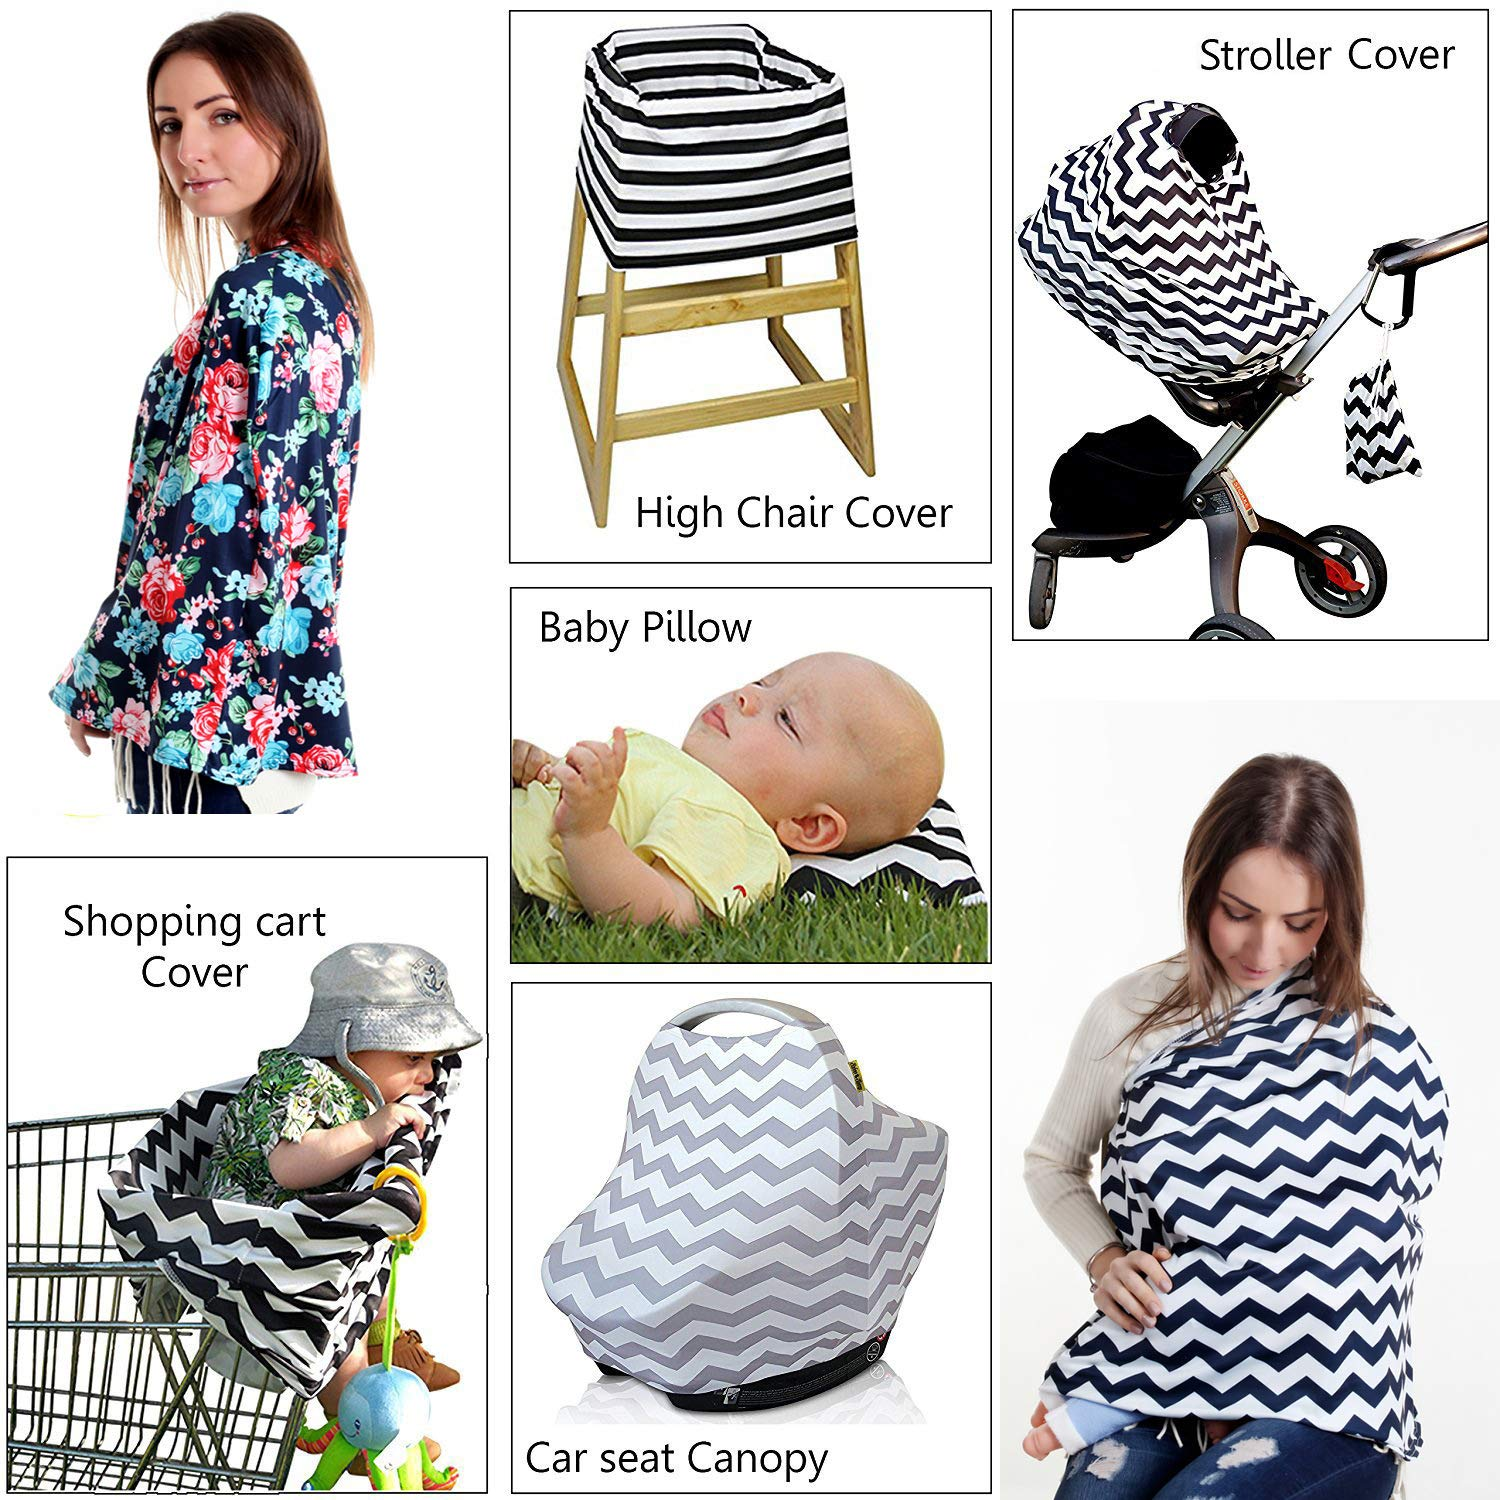 TUOKING Silky Texture Nursing Cover for Breastfeeding Cats Dream Car Seat Covers for Babies with Matching Pouch